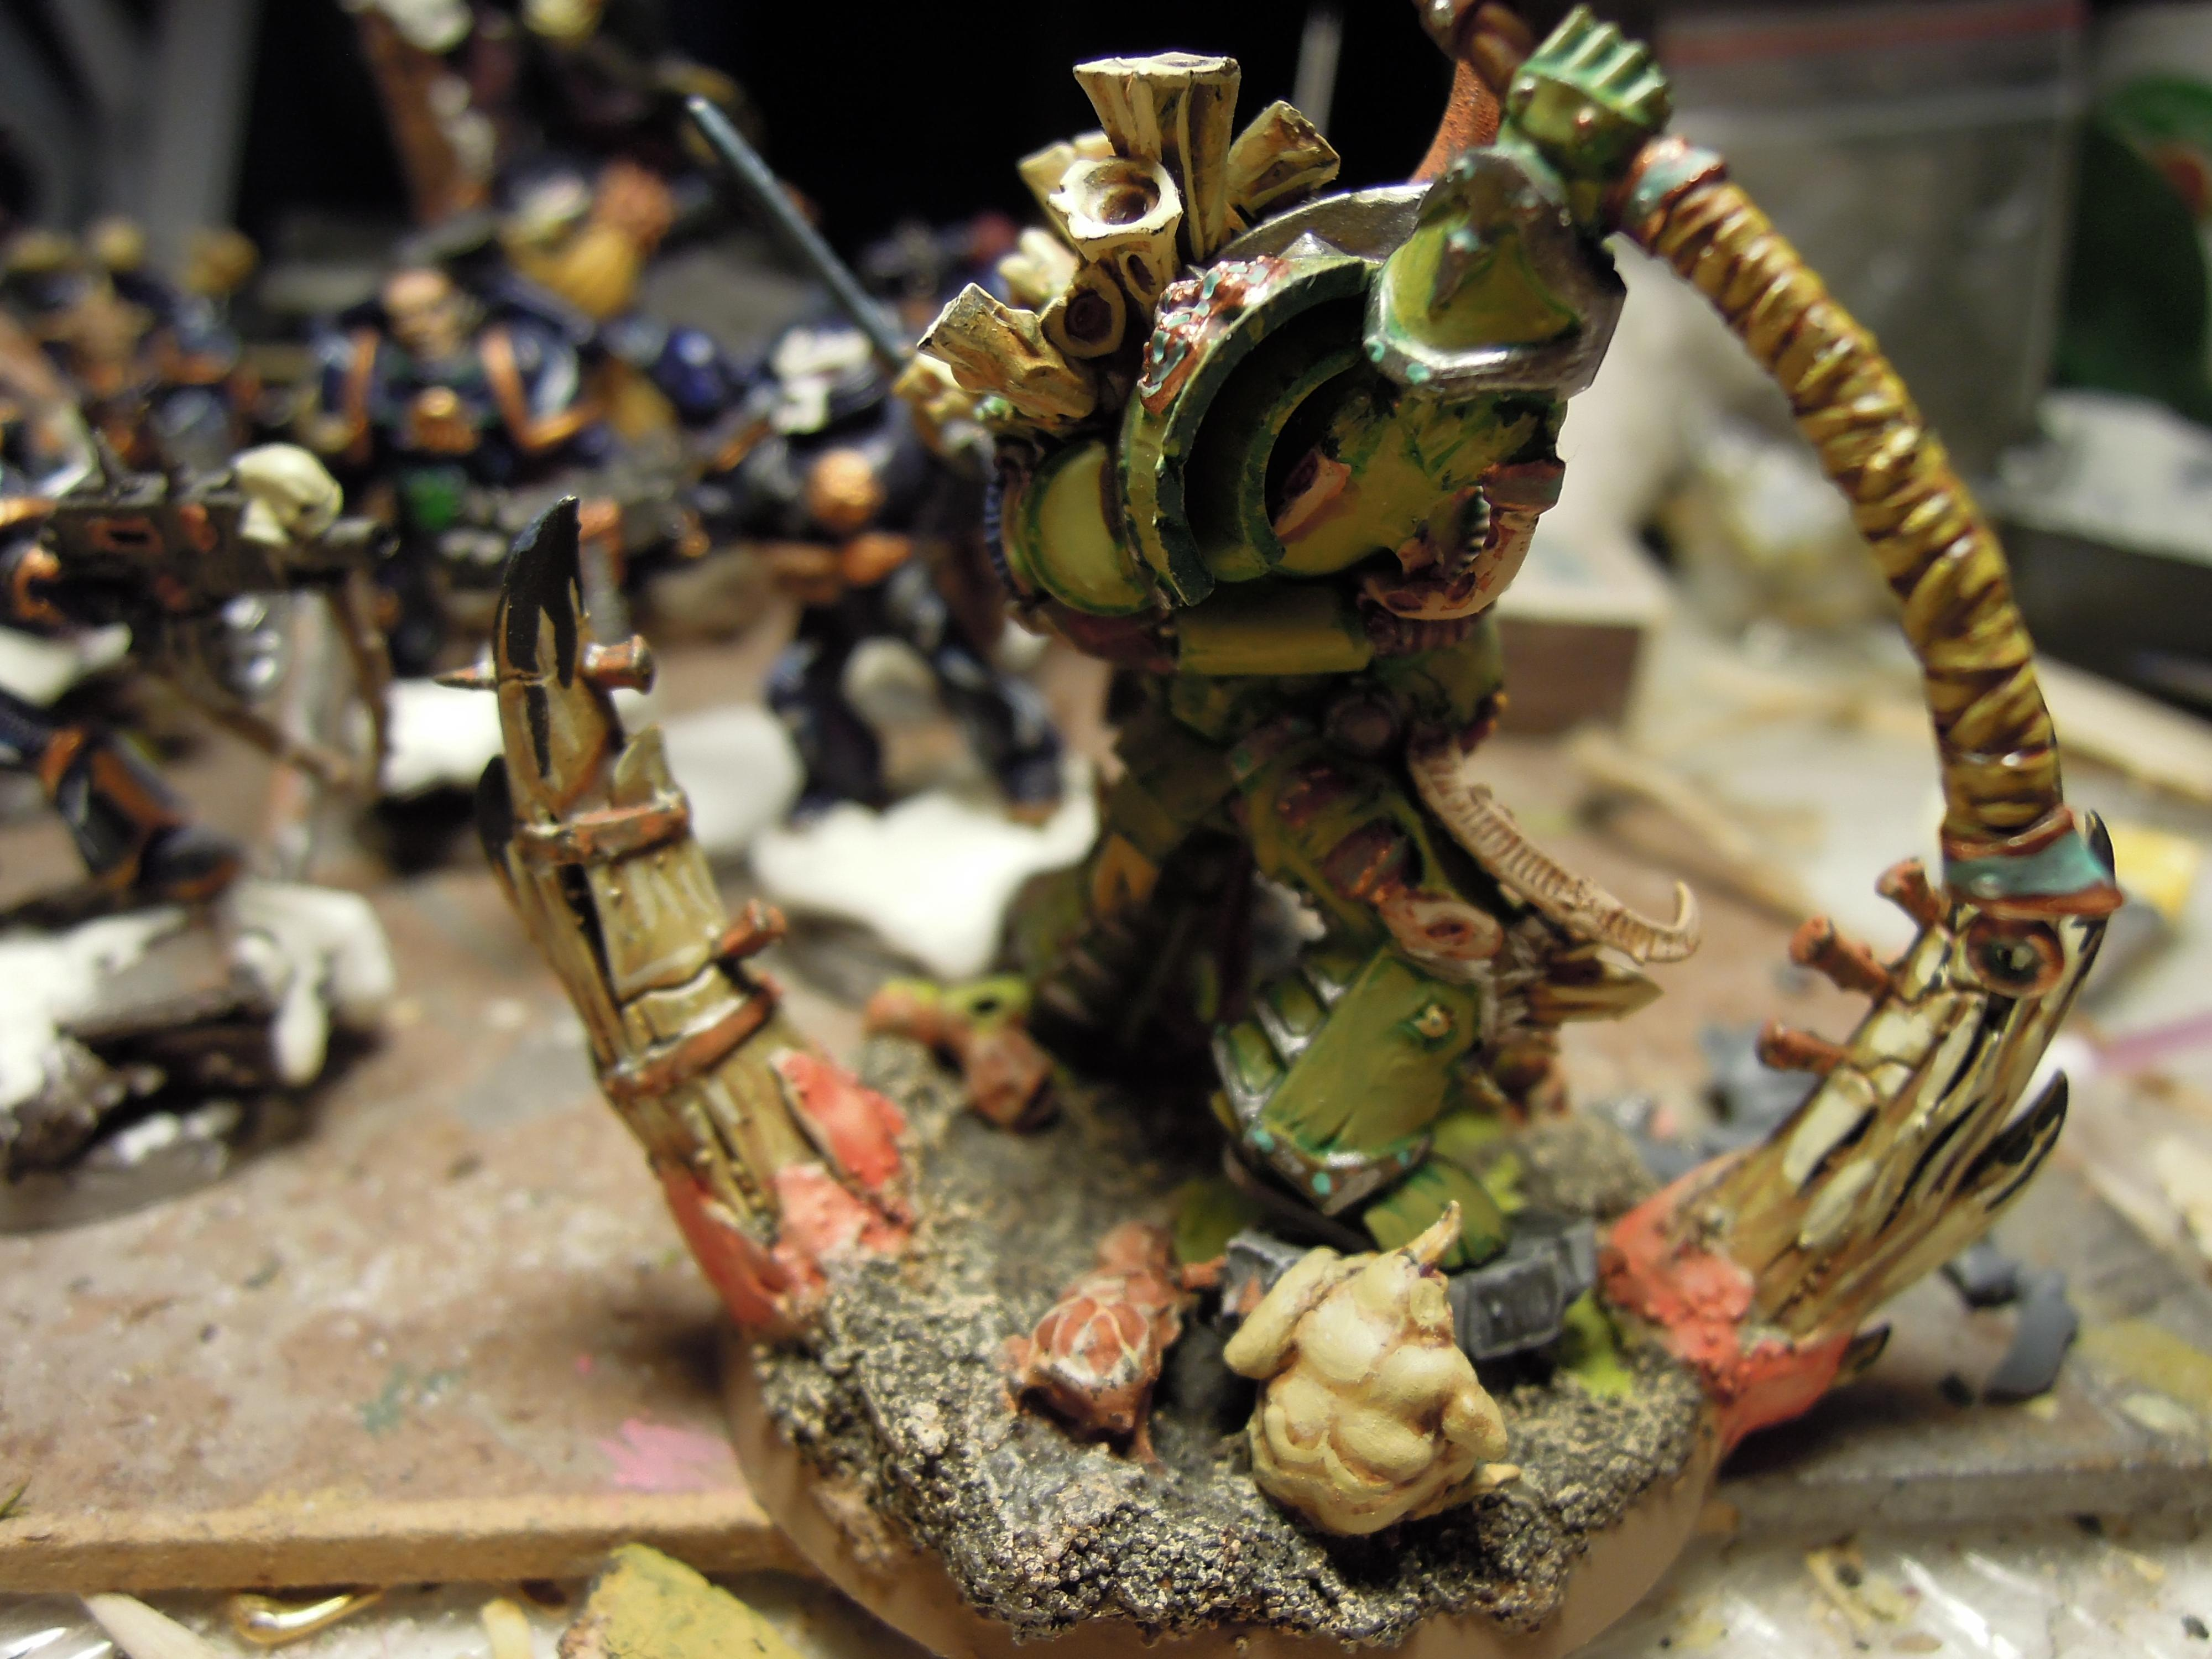 Blight, Cataphract, Chaos, Chaos Space Marines, Combi Weapon, Conversion, Death Guard, Destroyer Hive, Disease, Guts, Heretic Astartes, Nurgling, Pestilence, Plague, Plague Marines, Rot, Scythe, Terminator Armor, Typhus, Warhammer 40,000